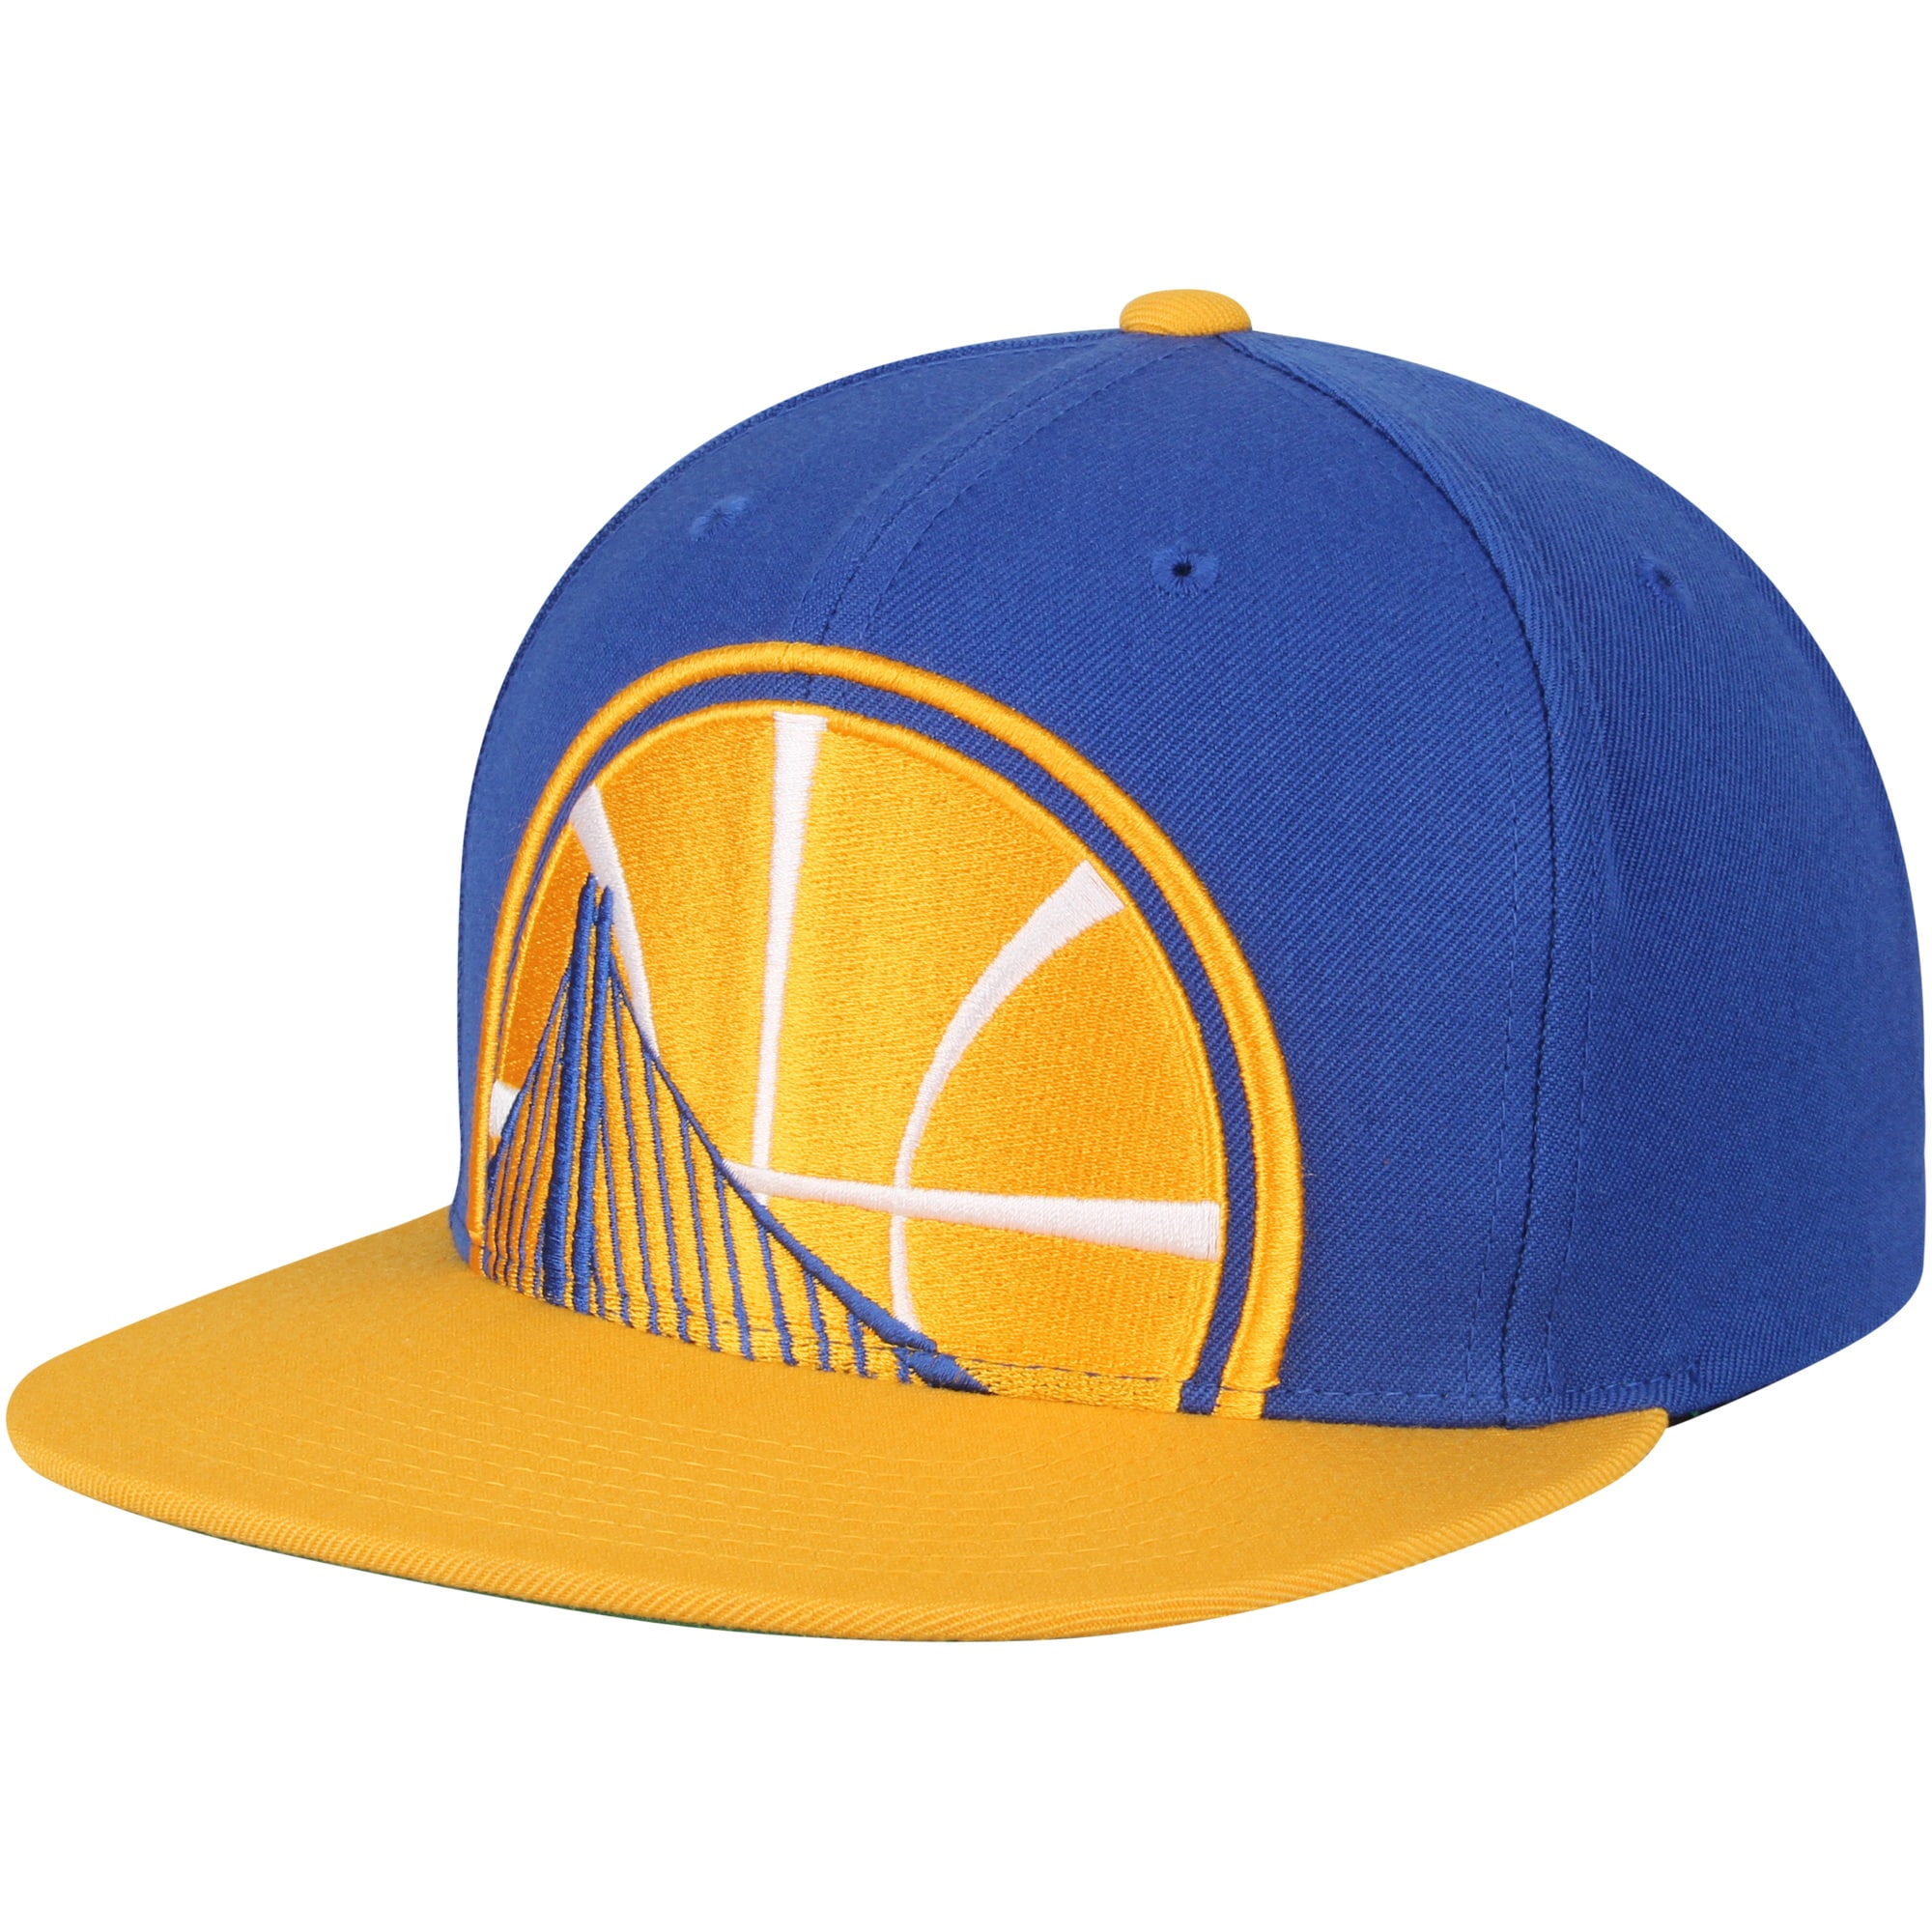 Golden State Warriors Mitchell & Ness Cropped XL Logo Adjustable Snapback Hat - Royal/Gold